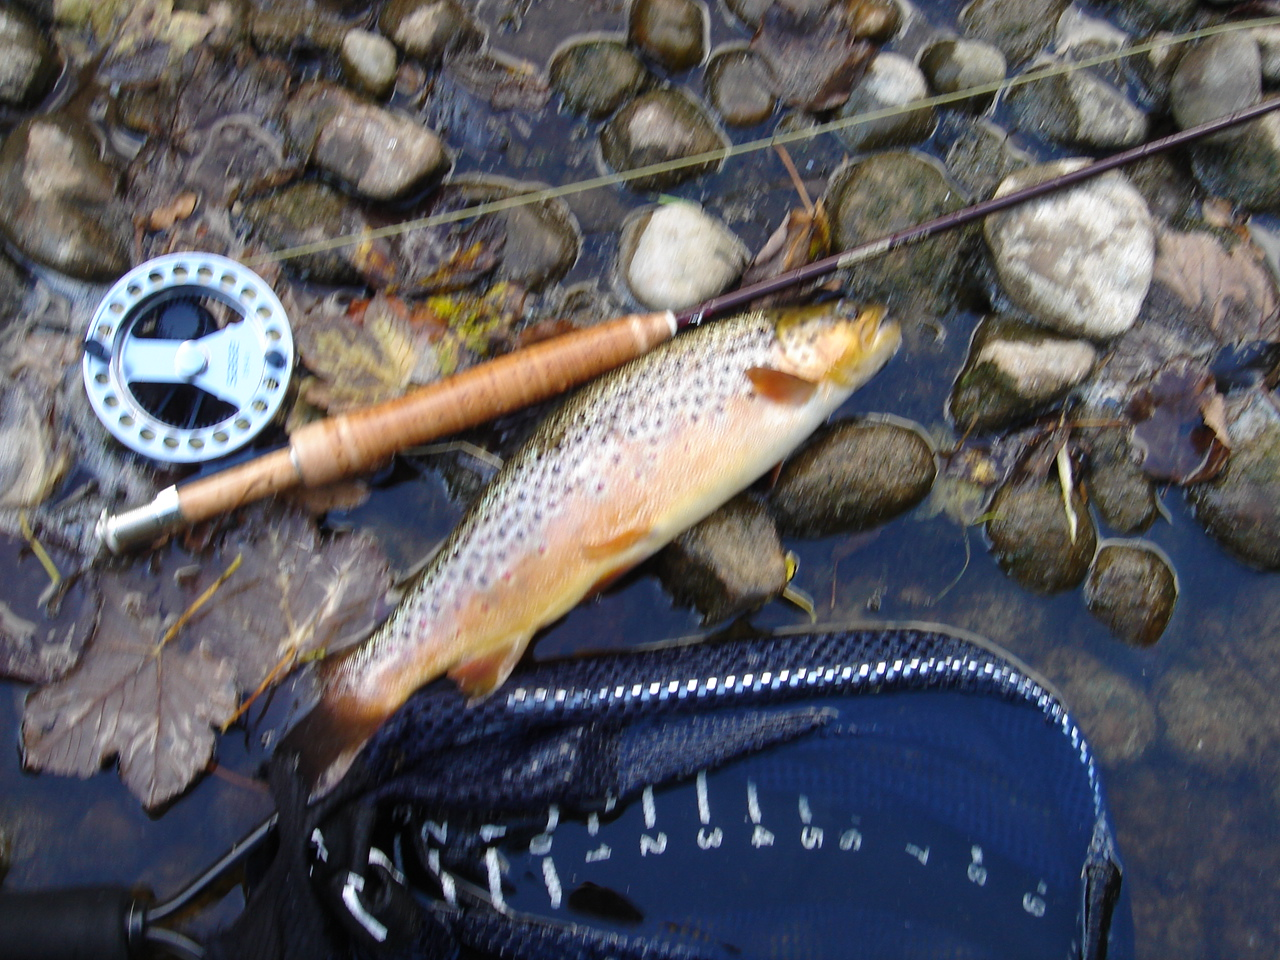 after matching the hatch all day in Burnsall with little result, i tried a big CDC ant with white legs and this fellow slammed it.  the picture is blurry because i hold my breath when i lift the fish out of the water to make sure it goes back in pretty quick.  this fish confirmed once again my opinion that the pool next the parking lot is always worth a try, since everyone else knows it's far too pressured.